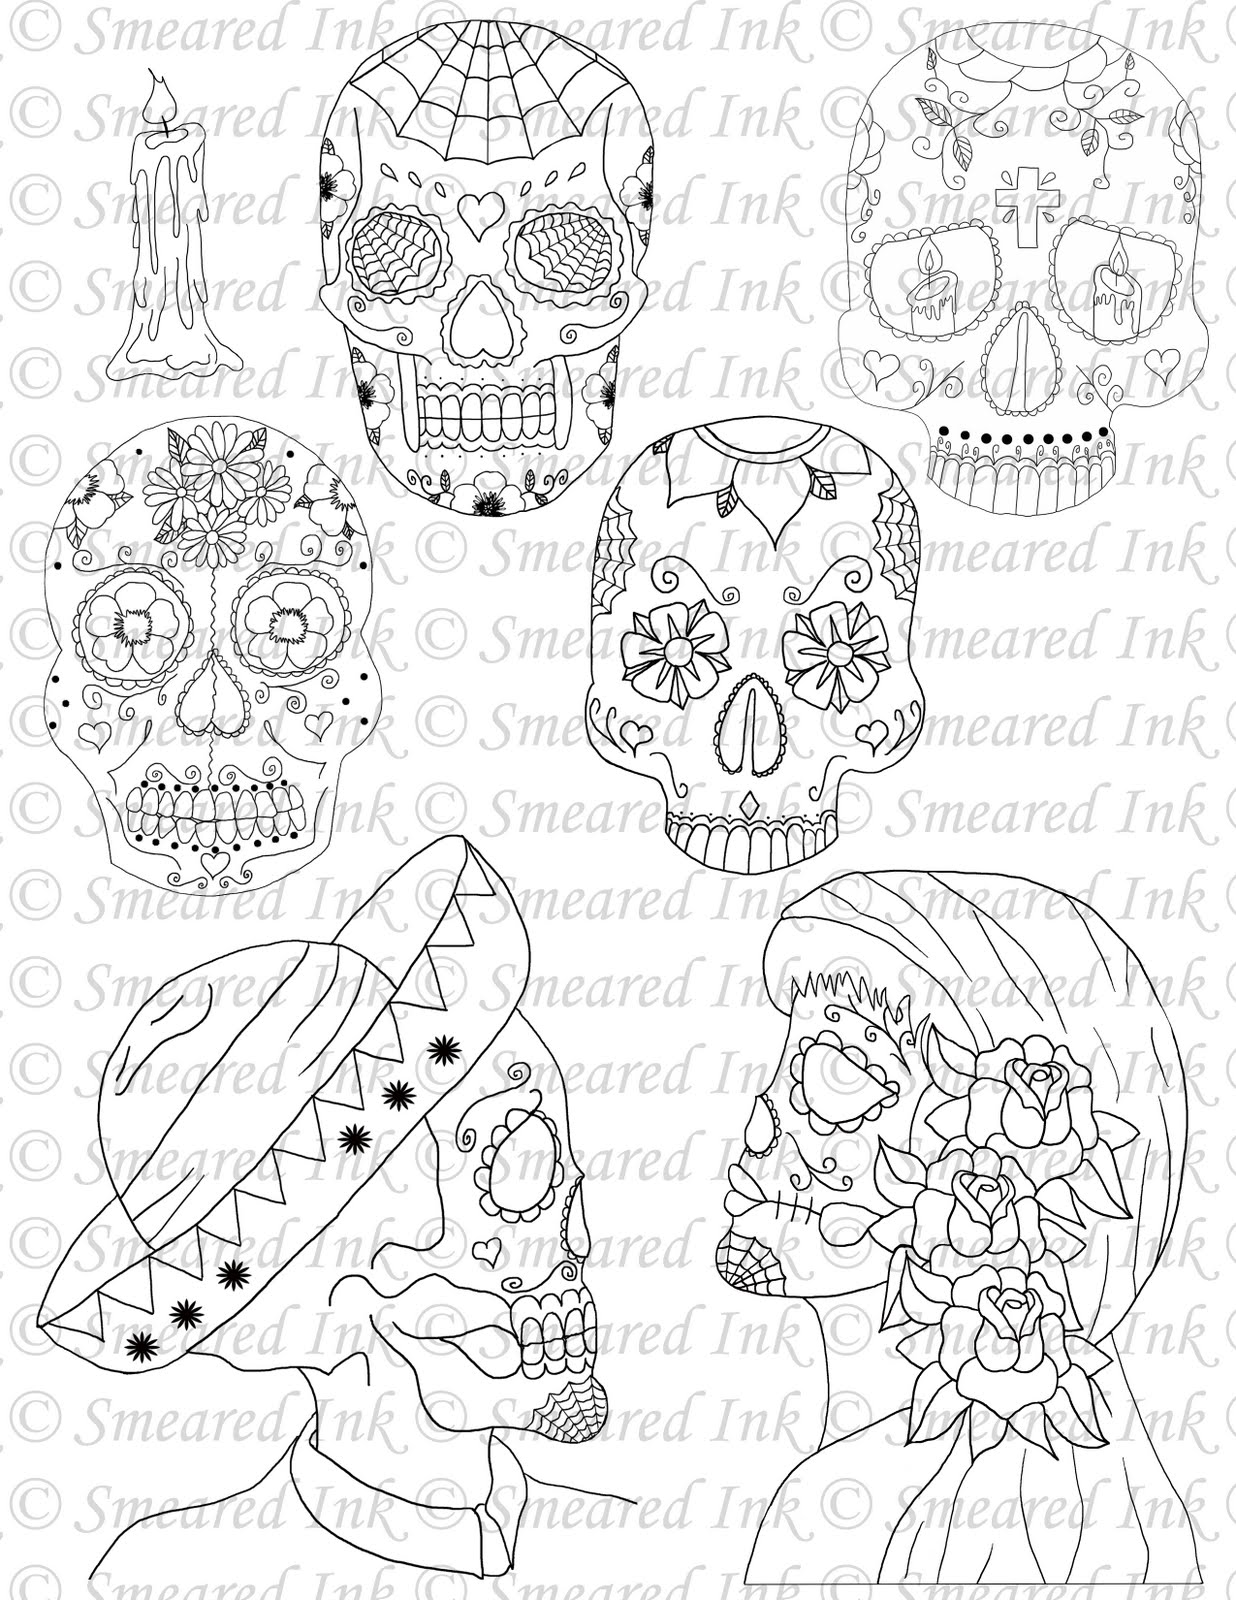 calavera catrina coloring pages - photo#28